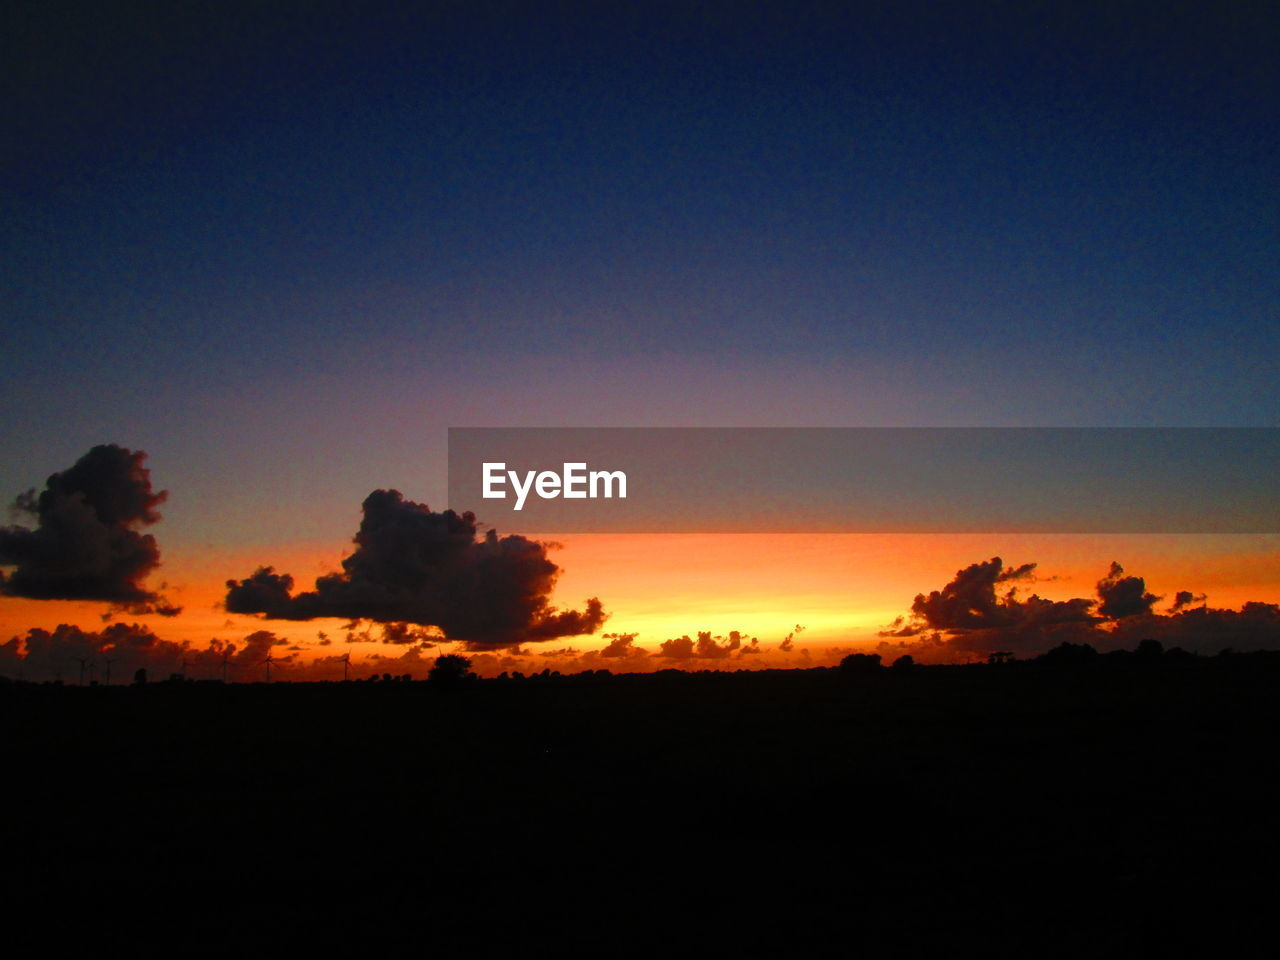 sky, sunset, beauty in nature, tranquility, silhouette, tranquil scene, scenics - nature, orange color, copy space, environment, nature, no people, cloud - sky, landscape, idyllic, outdoors, non-urban scene, dark, land, field